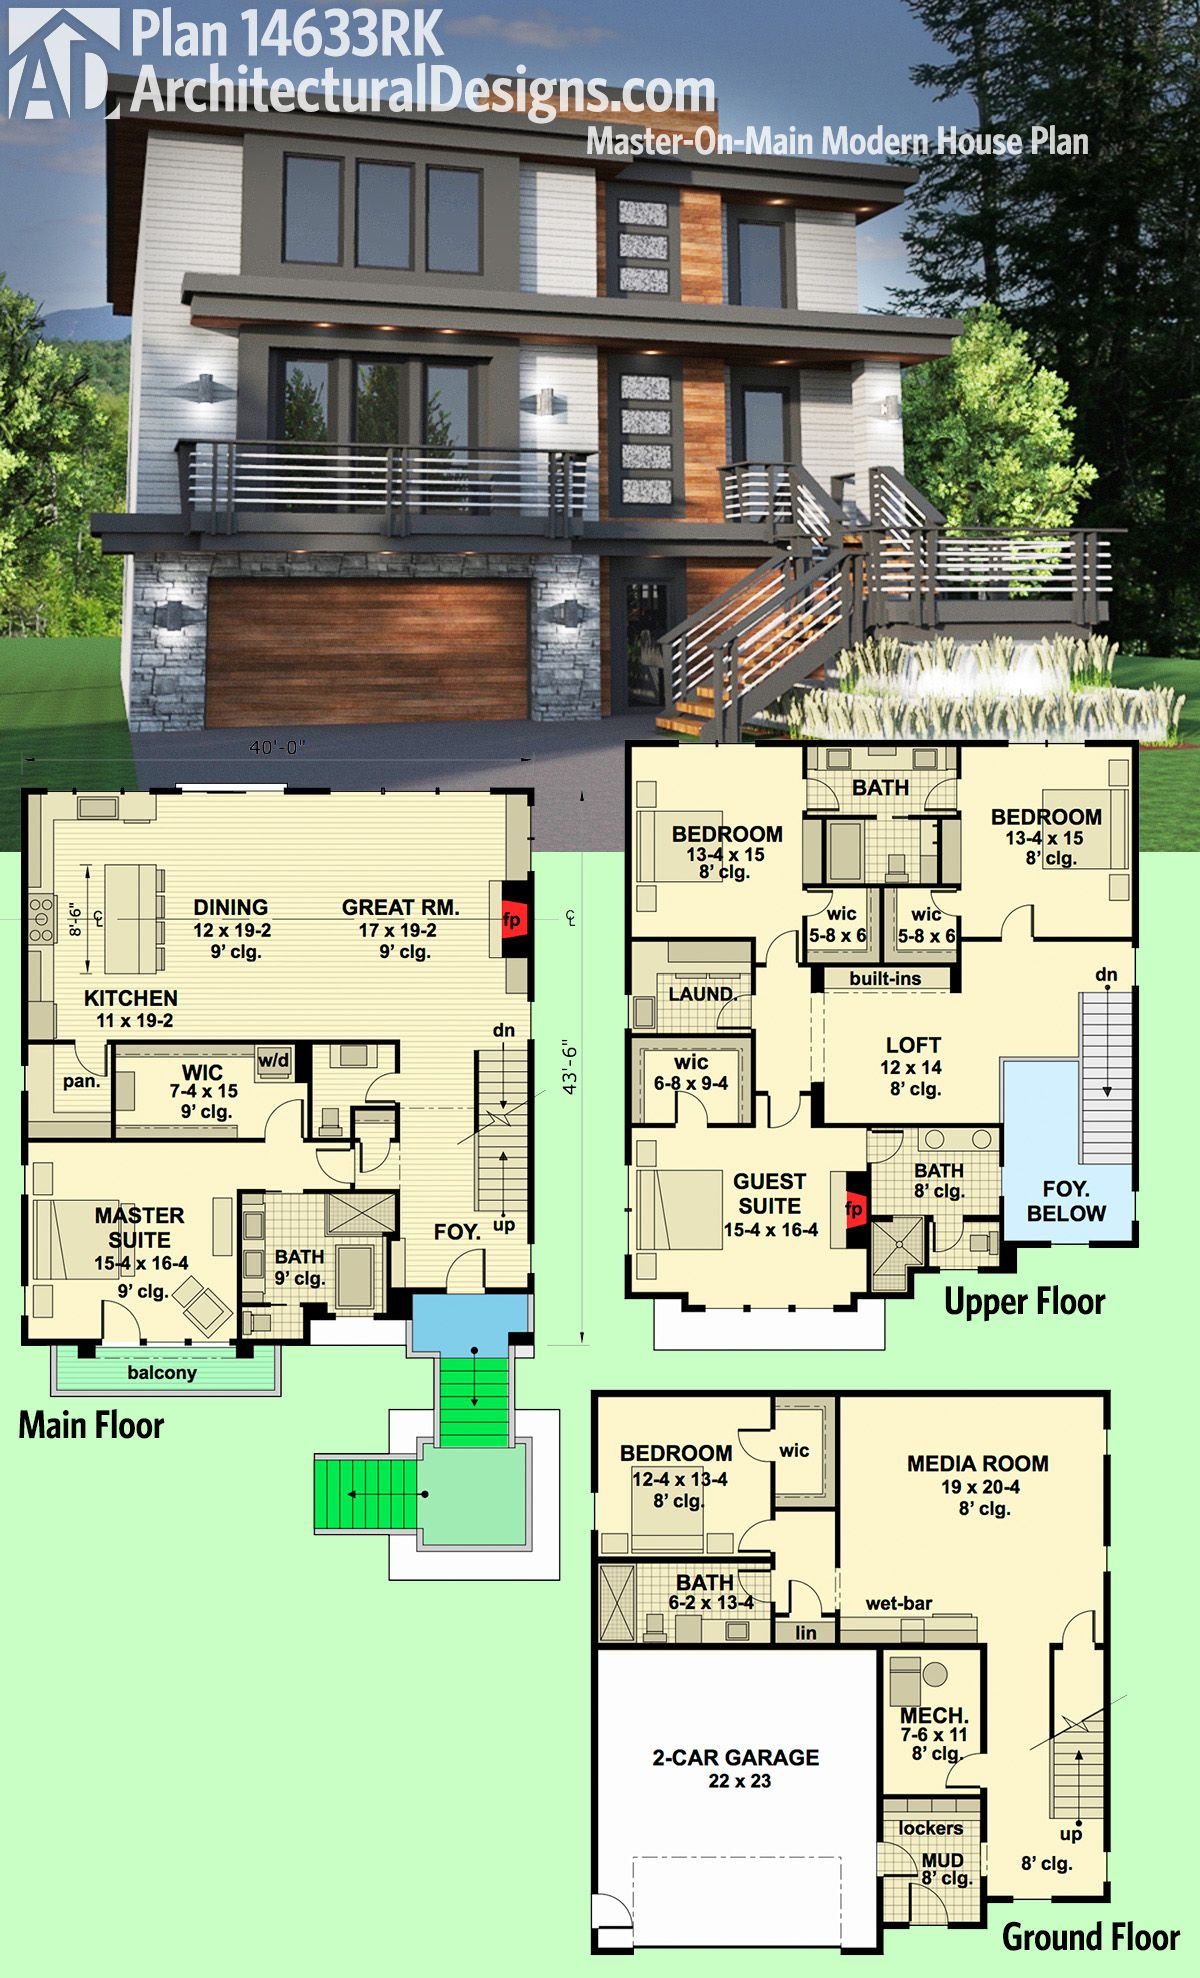 Plan 14633rk master on main modern house plan modern Modern mansion floor plans